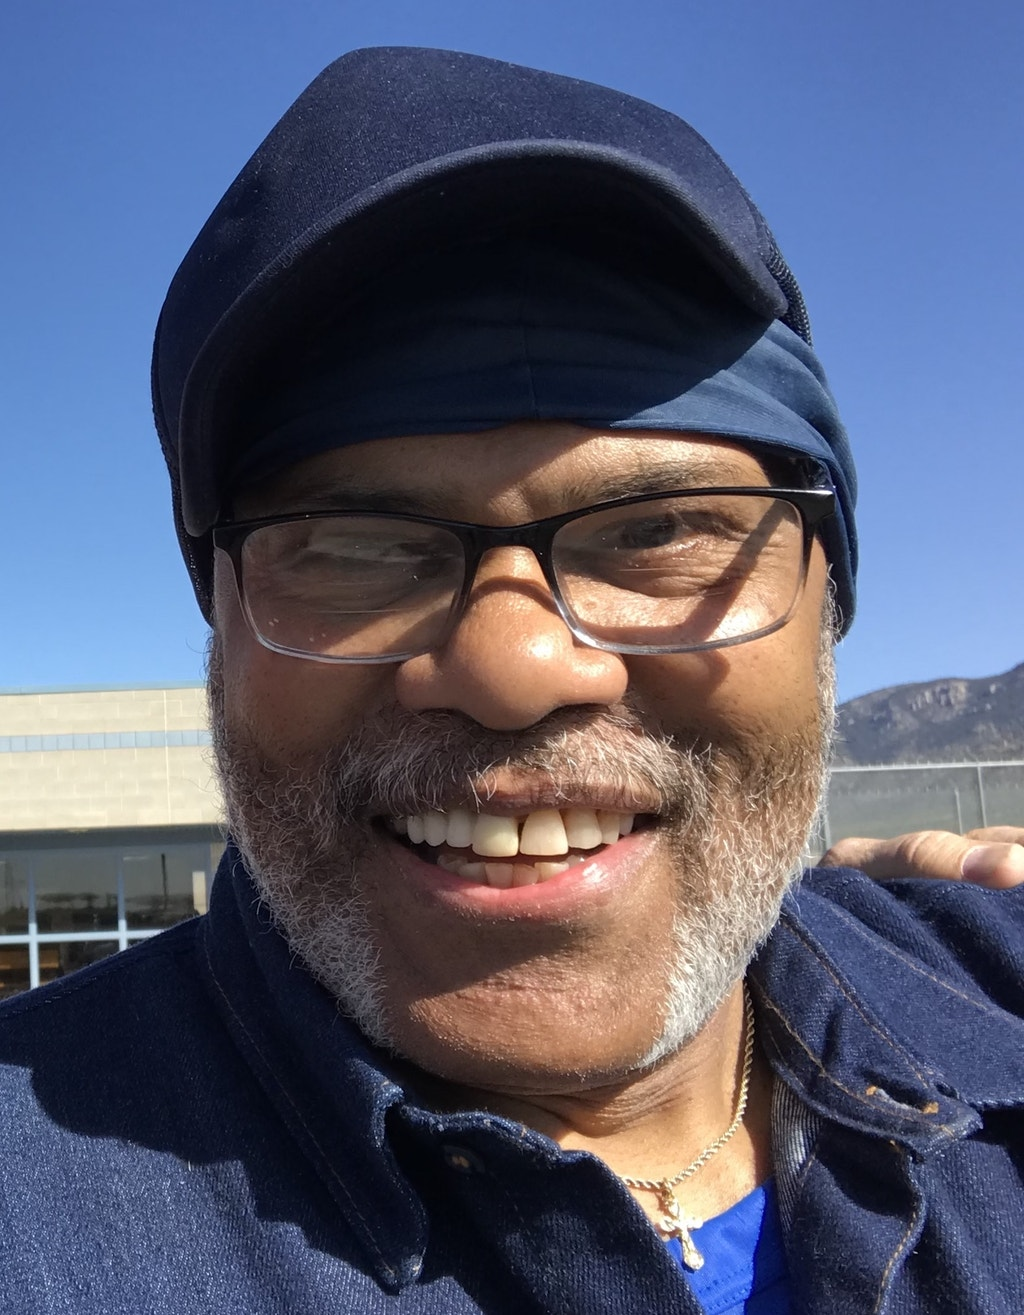 Nevada Man Convicted by Prosecutorial Misconduct and 'Woefully Inadequate' Defense Counsel Released After 33 Years on Death Row